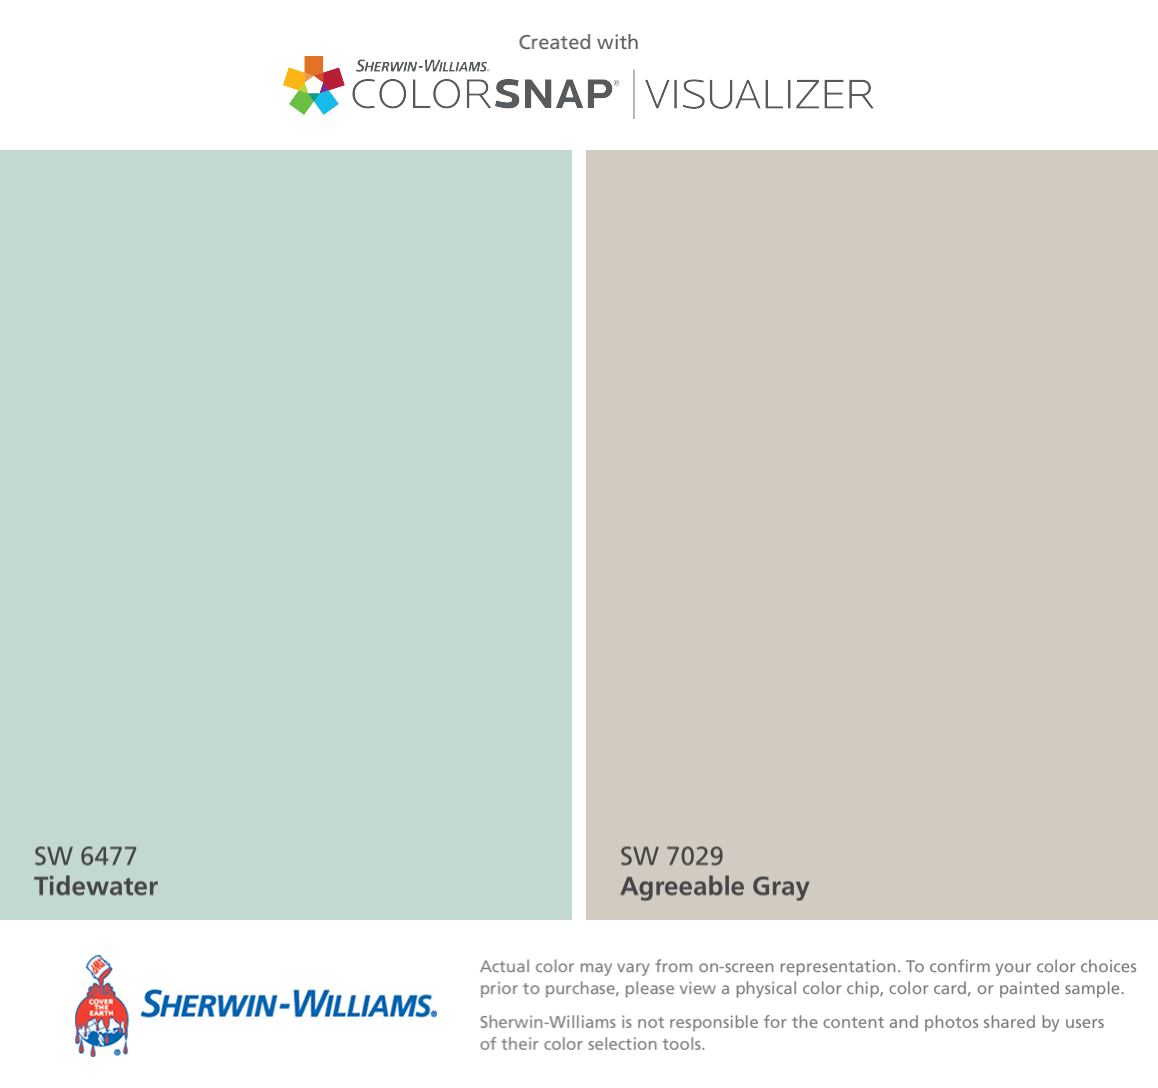 I found these colors with ColorSnap® Visualizer for iPhone by Sherwin-Williams: Tidewater (SW 6477), Agreeable Gray (SW 7029). #sherwinwilliamsagreeablegray